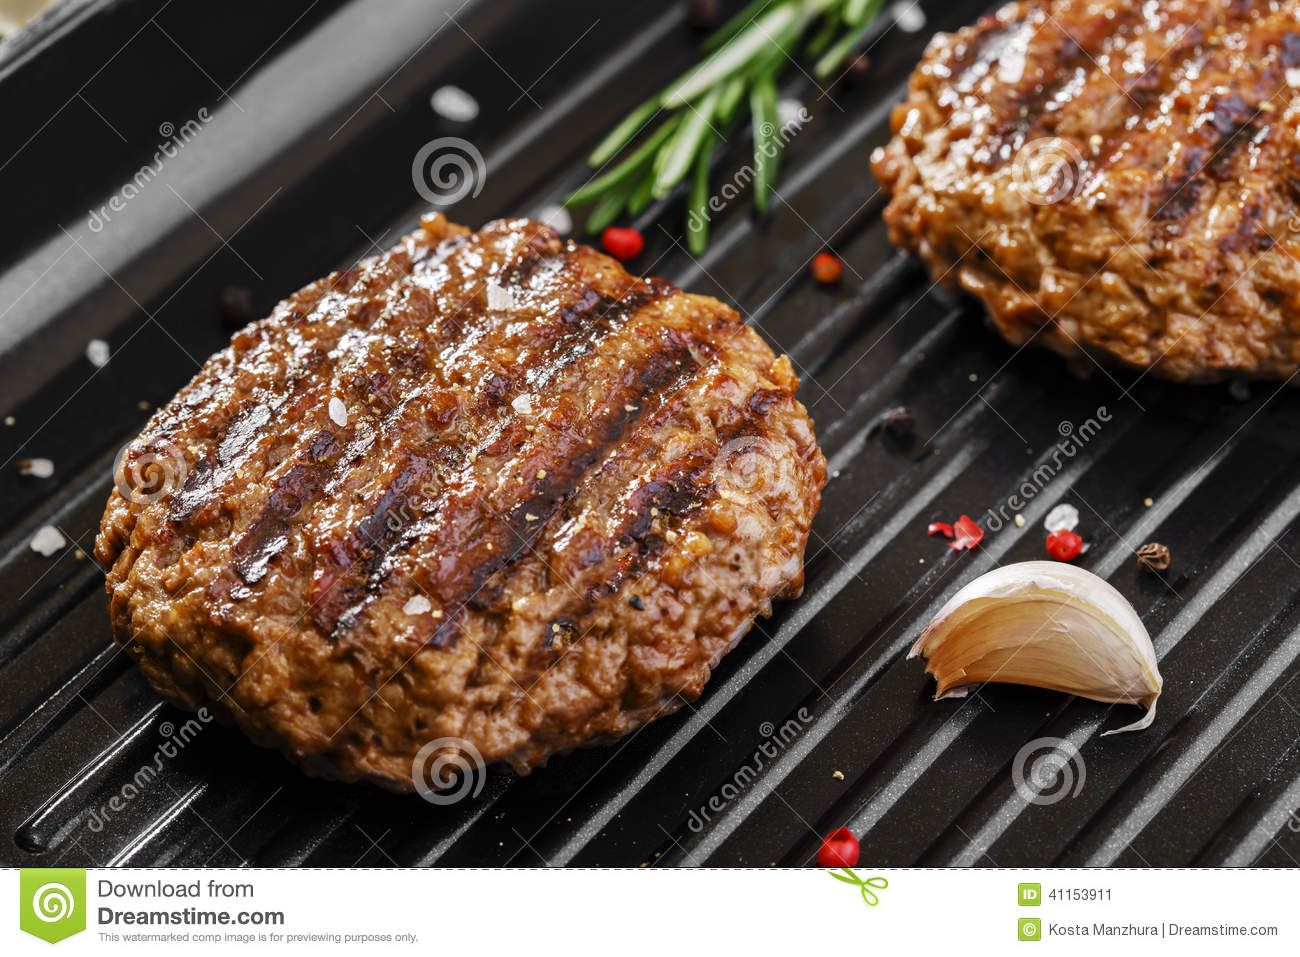 Download Burger grill stock image. Image of food, grill, flames - 41153911